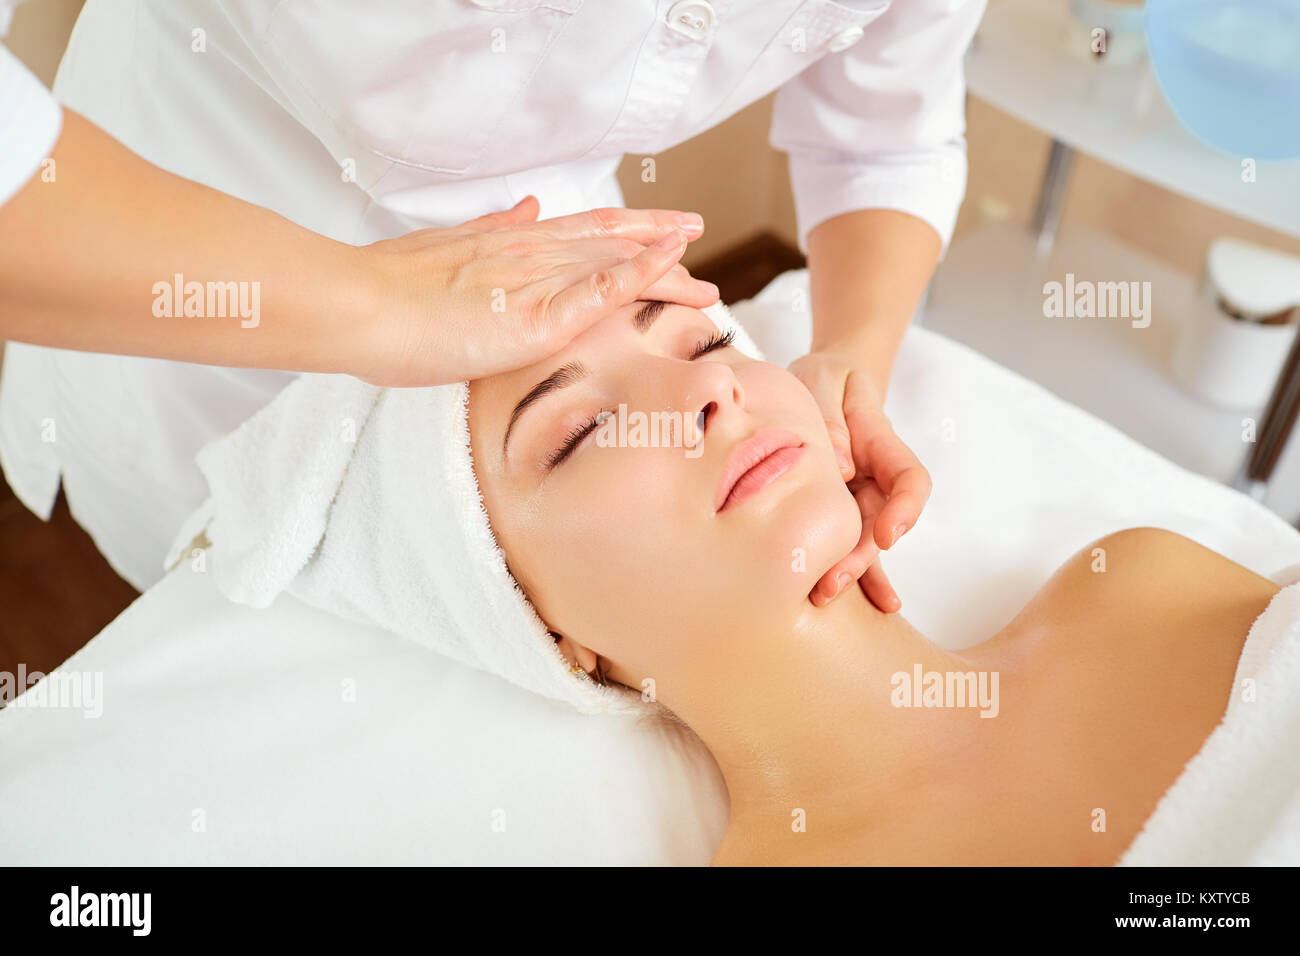 Beautiful woman at a facial massage. - Stock Image